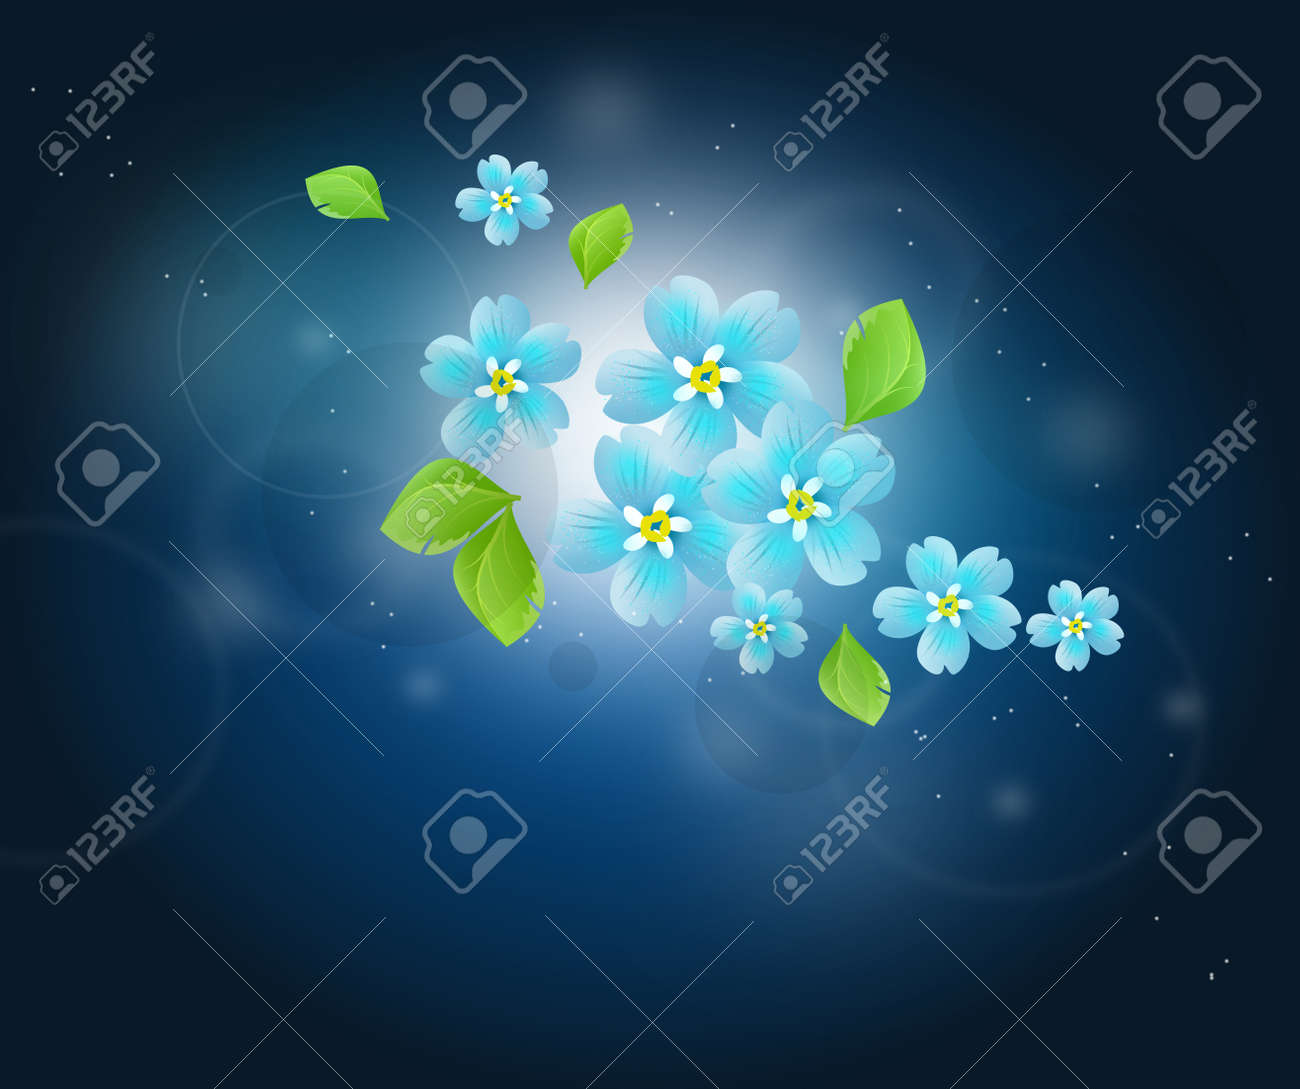 Beautiful Illustration Of Tiny Blue Flowers On Dark Blue Abstract